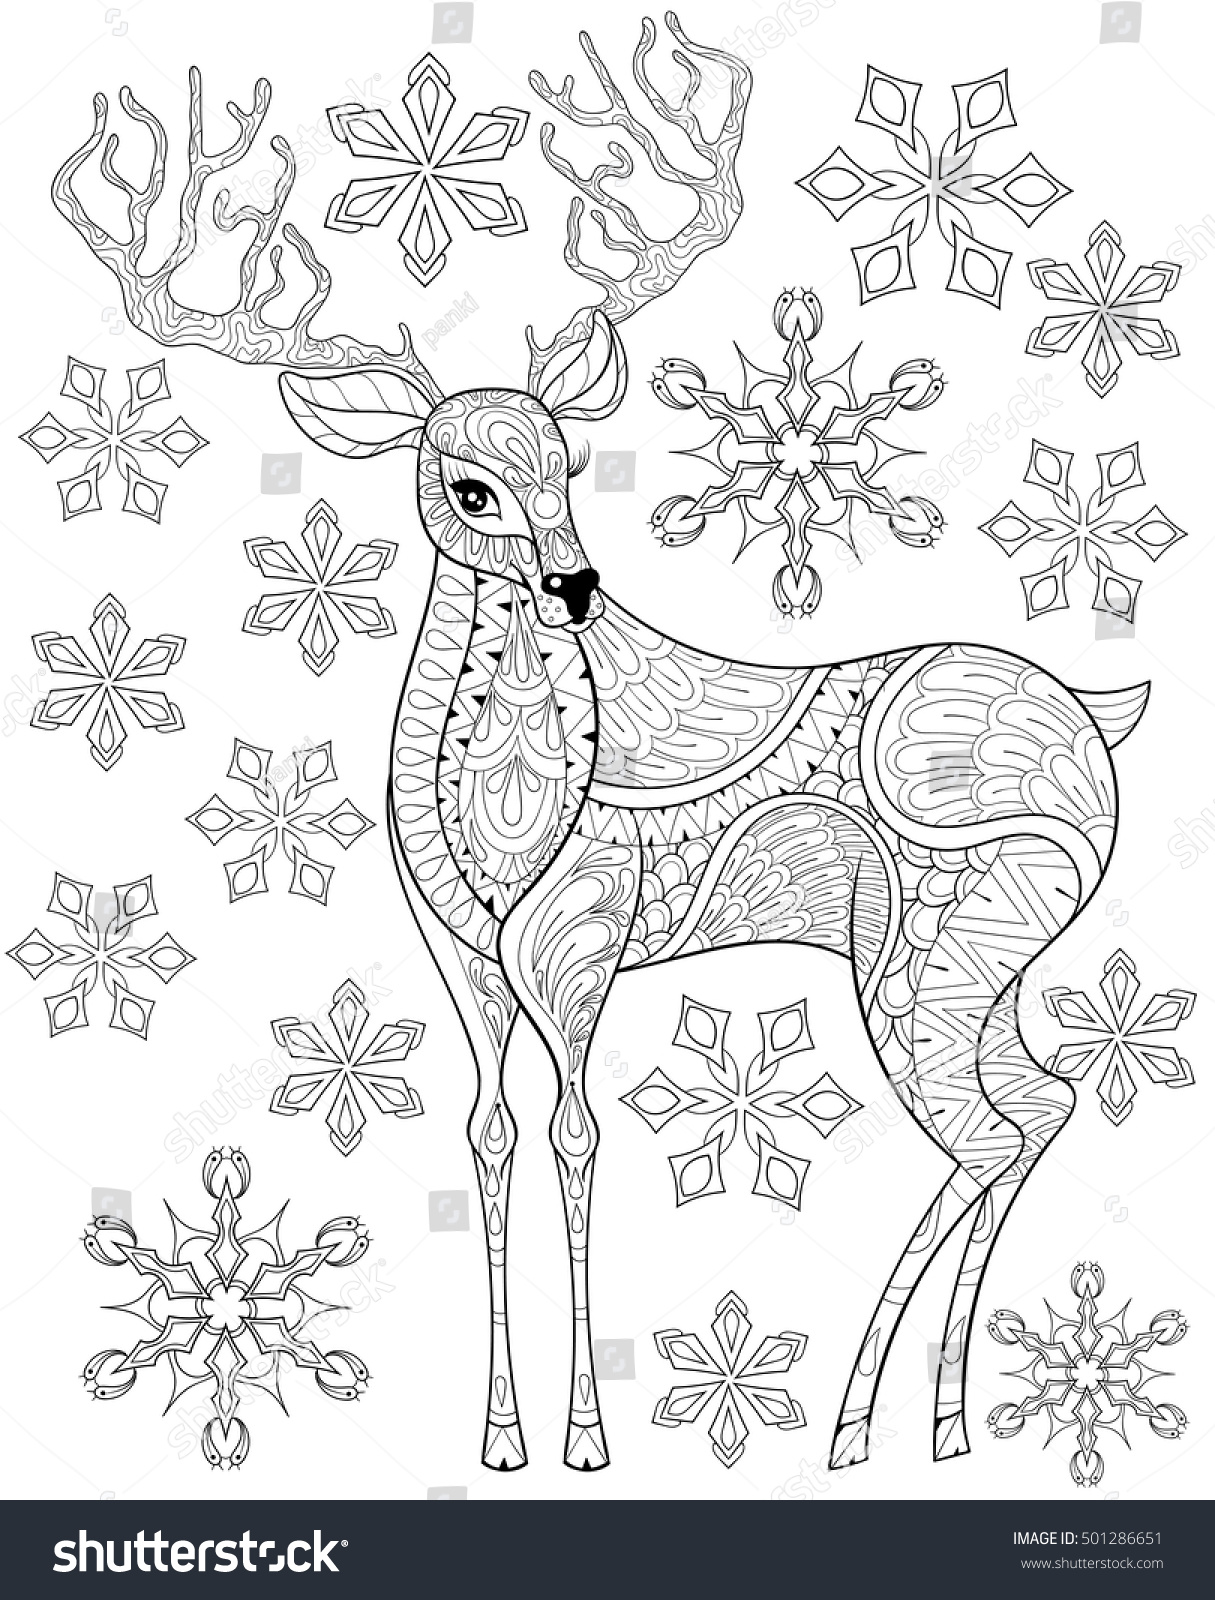 vector zentangle christmas reindeer on snowflakes for adult antistress coloring pages hand drawn illustration for